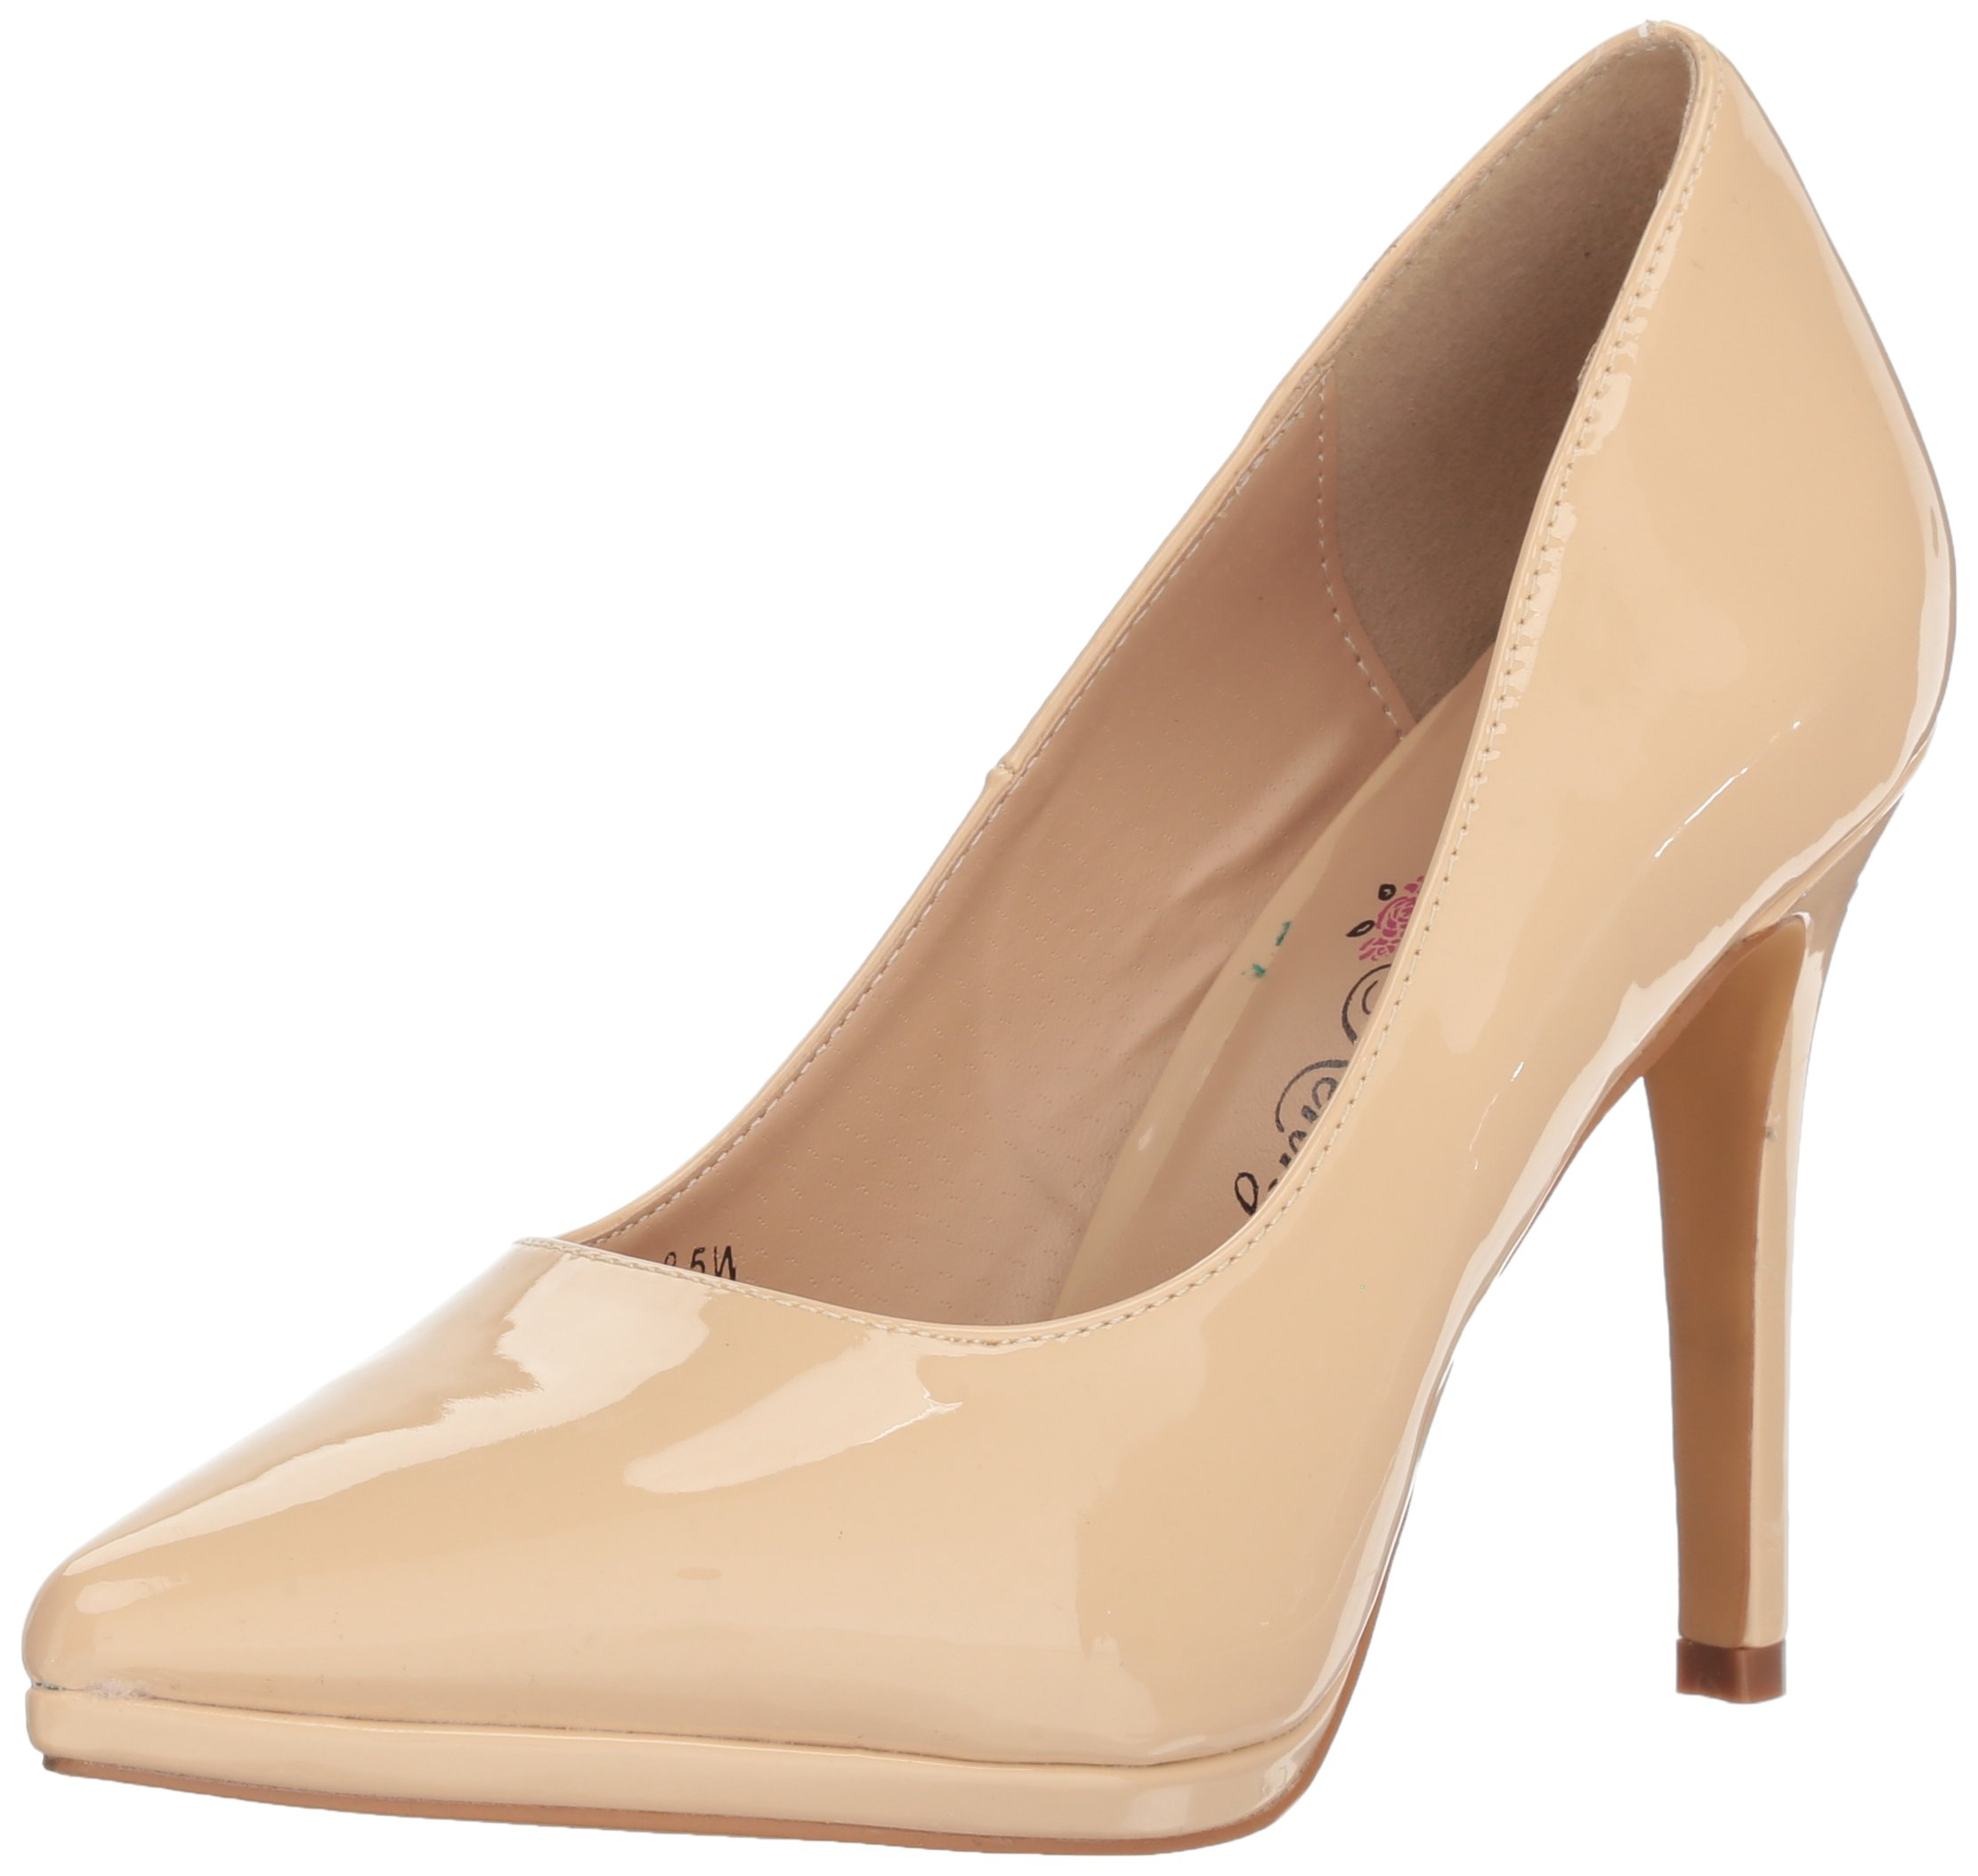 Penny Loves Kenny Women's Opus PF Platform, Nude Patent, 11 Medium US by Penny Loves Kenny